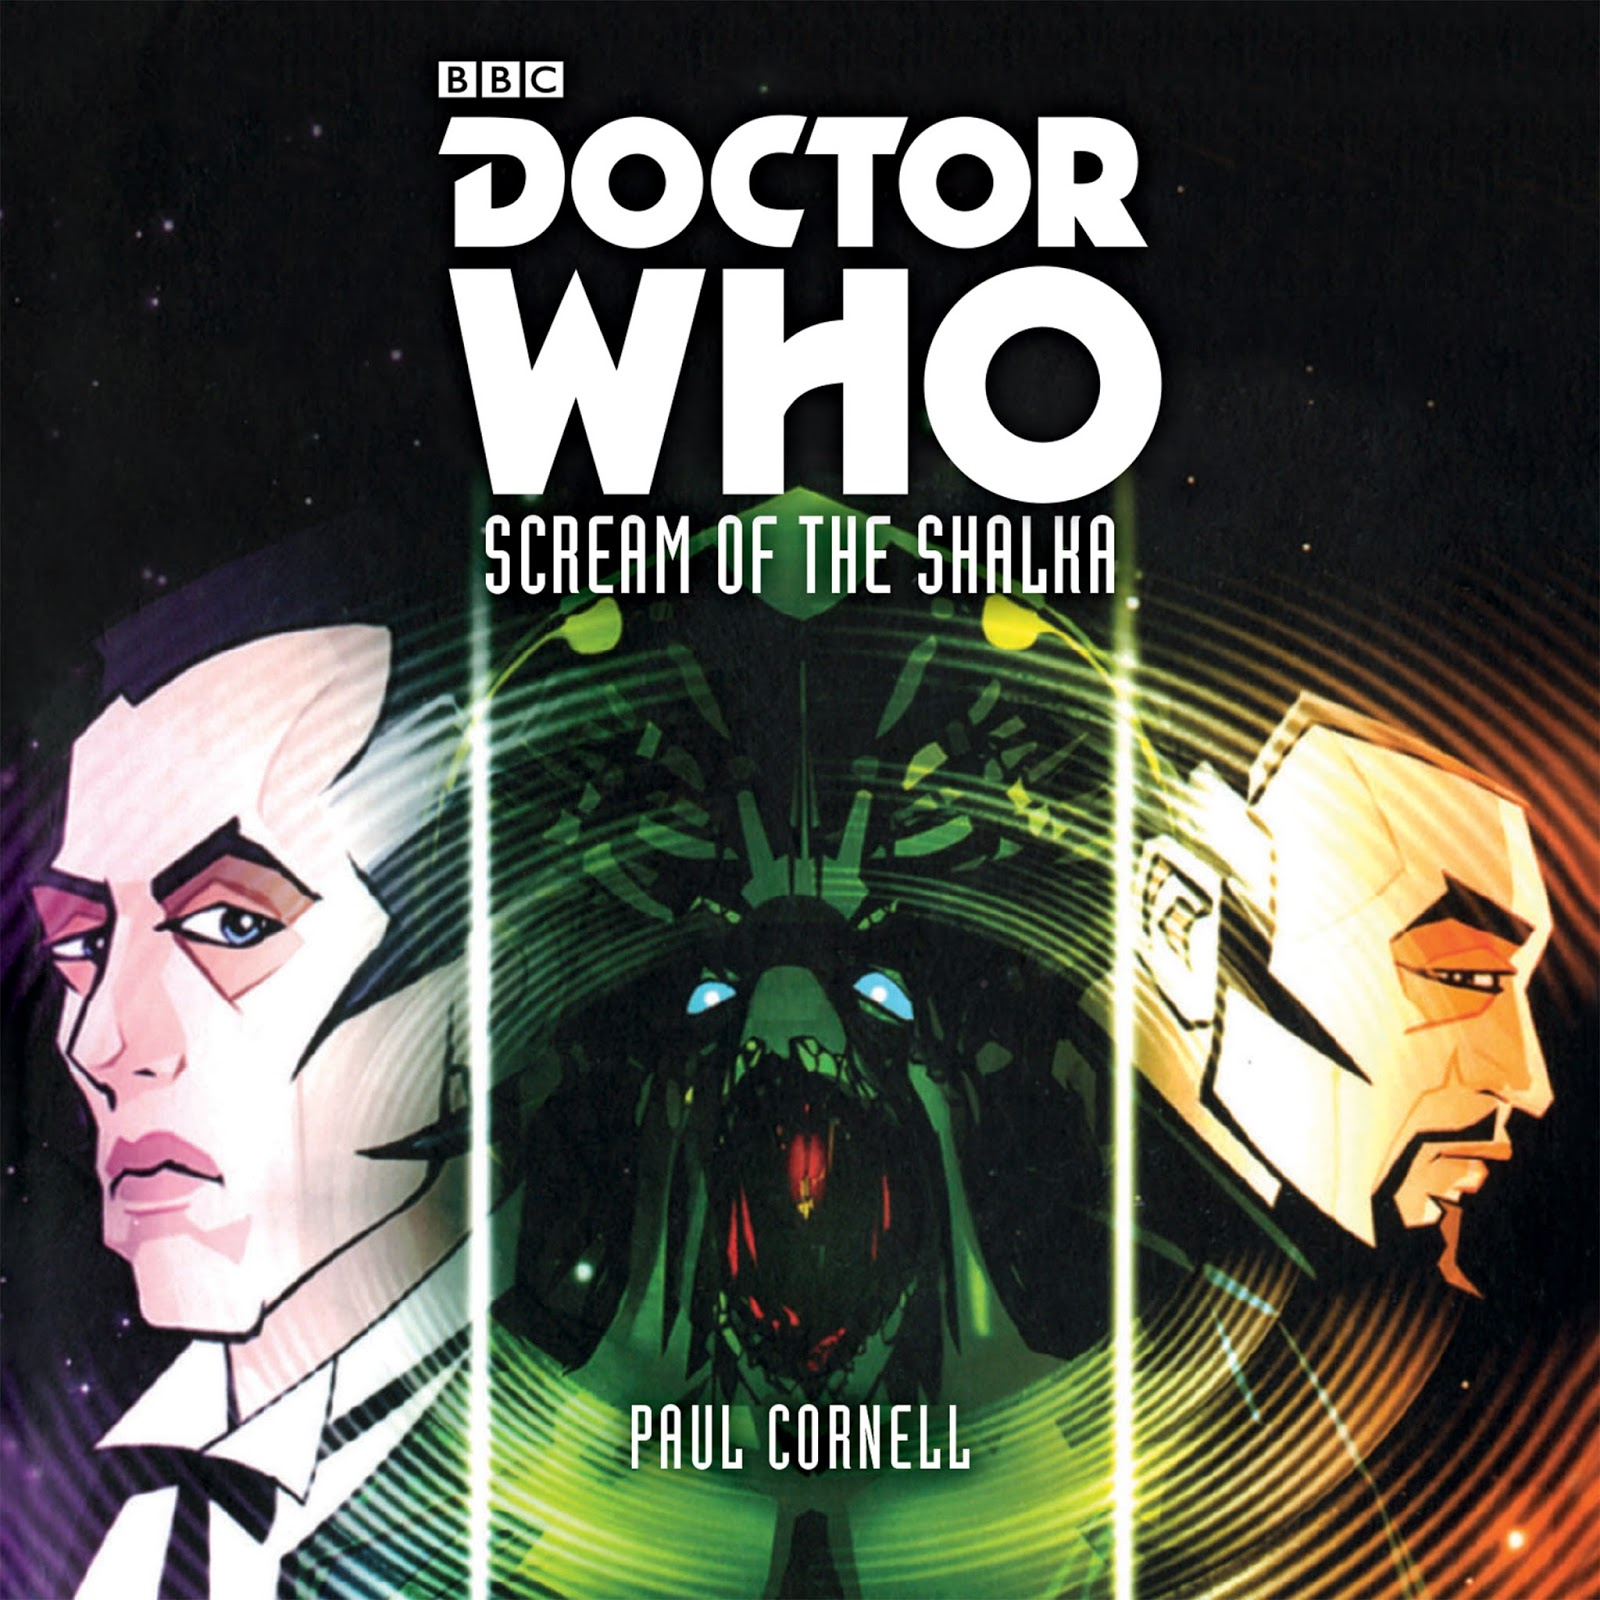 Past Doctor Adventures [64] Scream of the Shalka - Paul Cornell